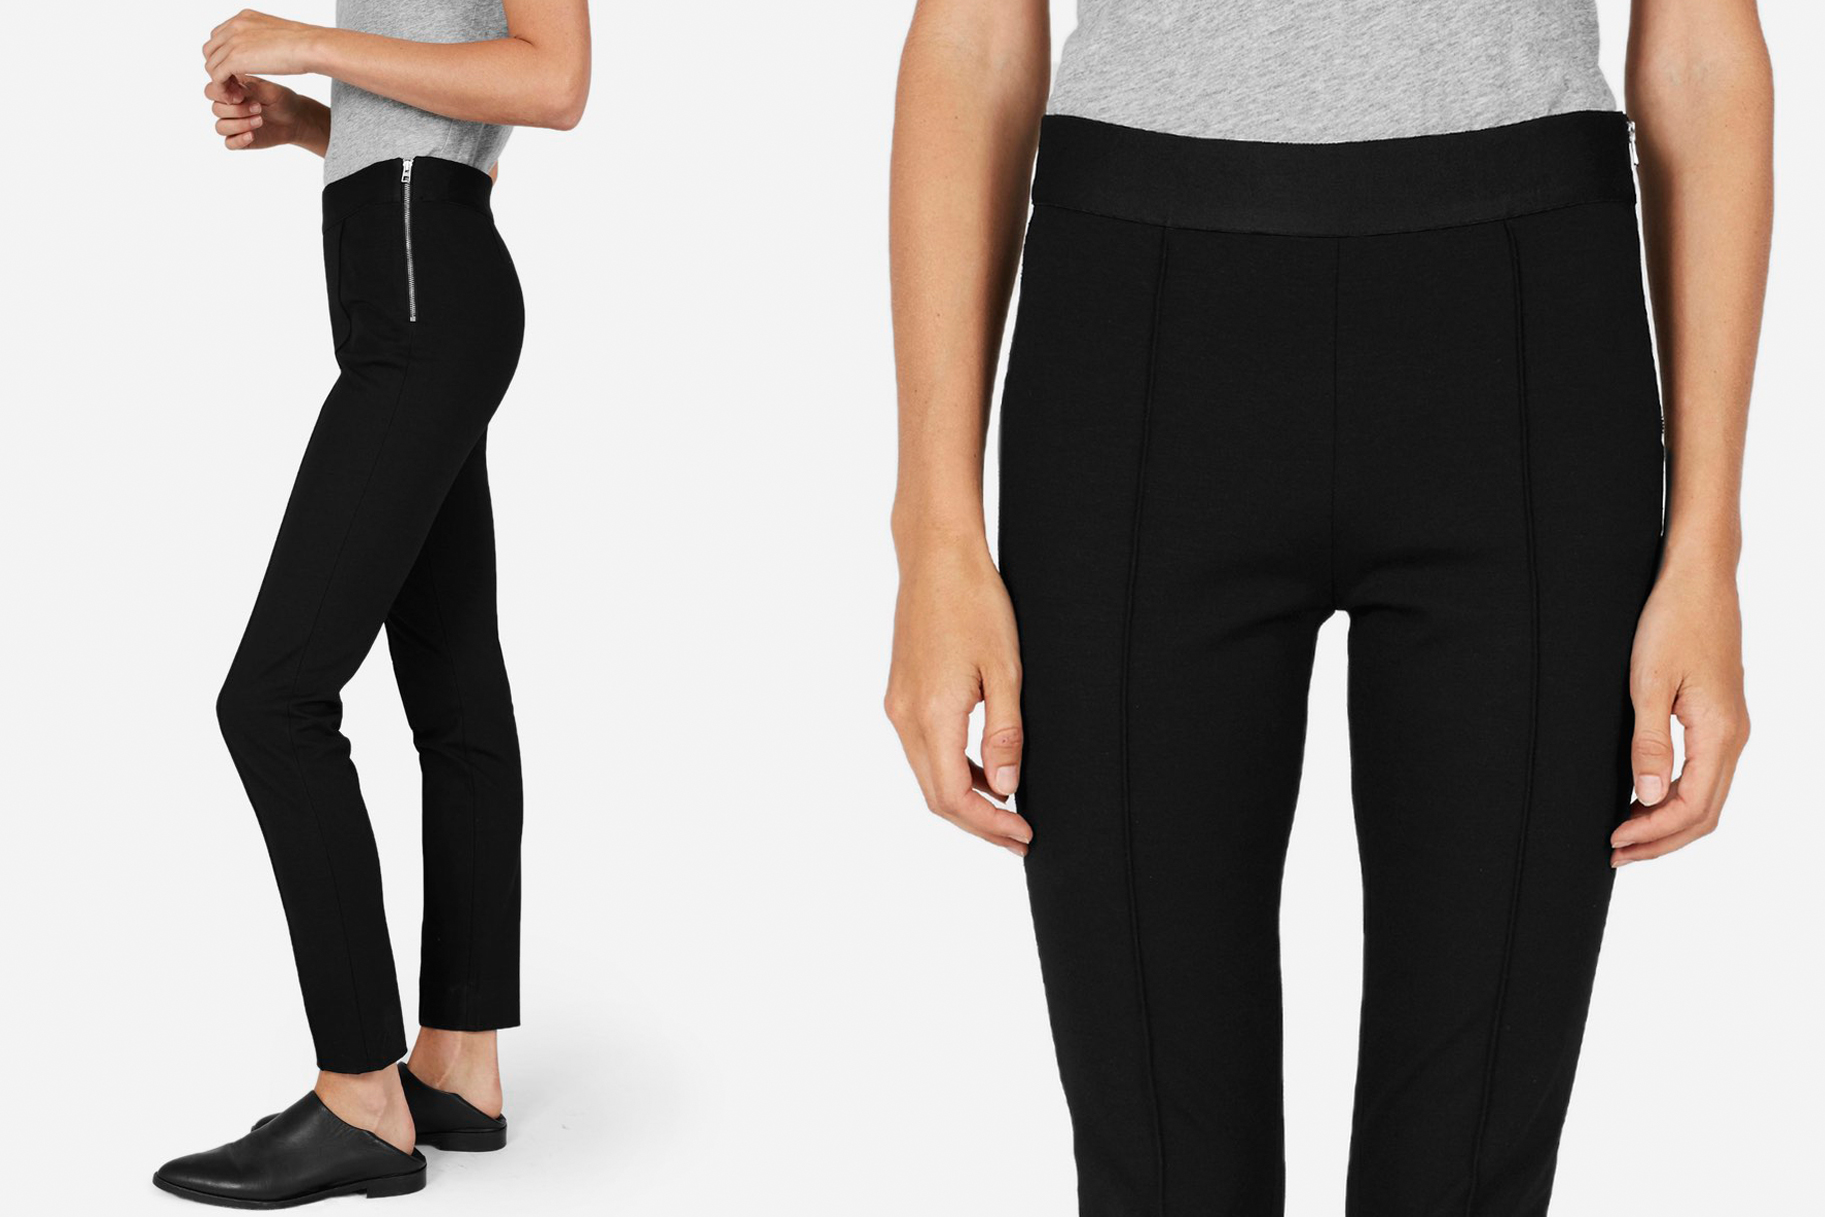 Comfortable, Elastic-Waist Pants You Can Wear to Work | Most Wanted